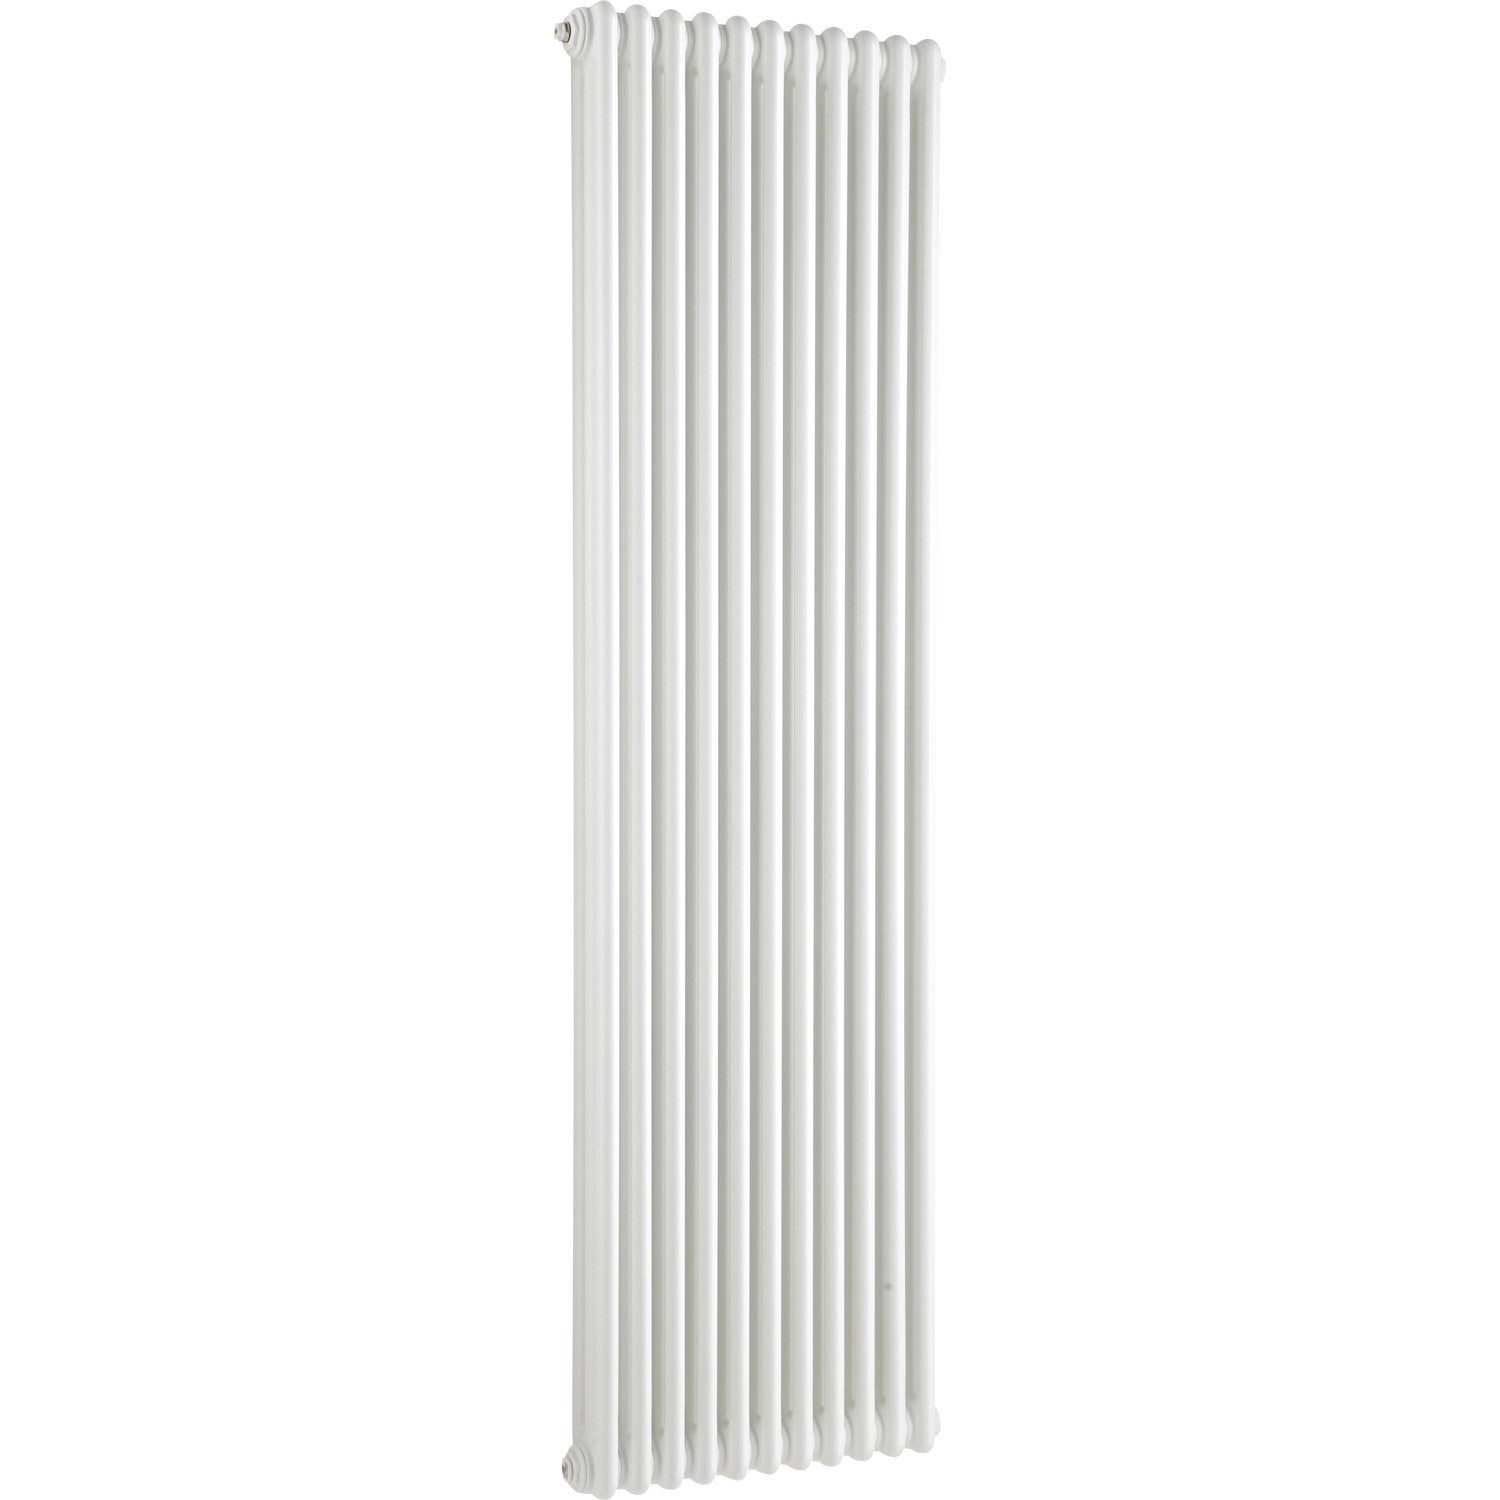 radiateur acier leroy merlin awesome equerre pince clip acier inox leroy merlin tablette. Black Bedroom Furniture Sets. Home Design Ideas